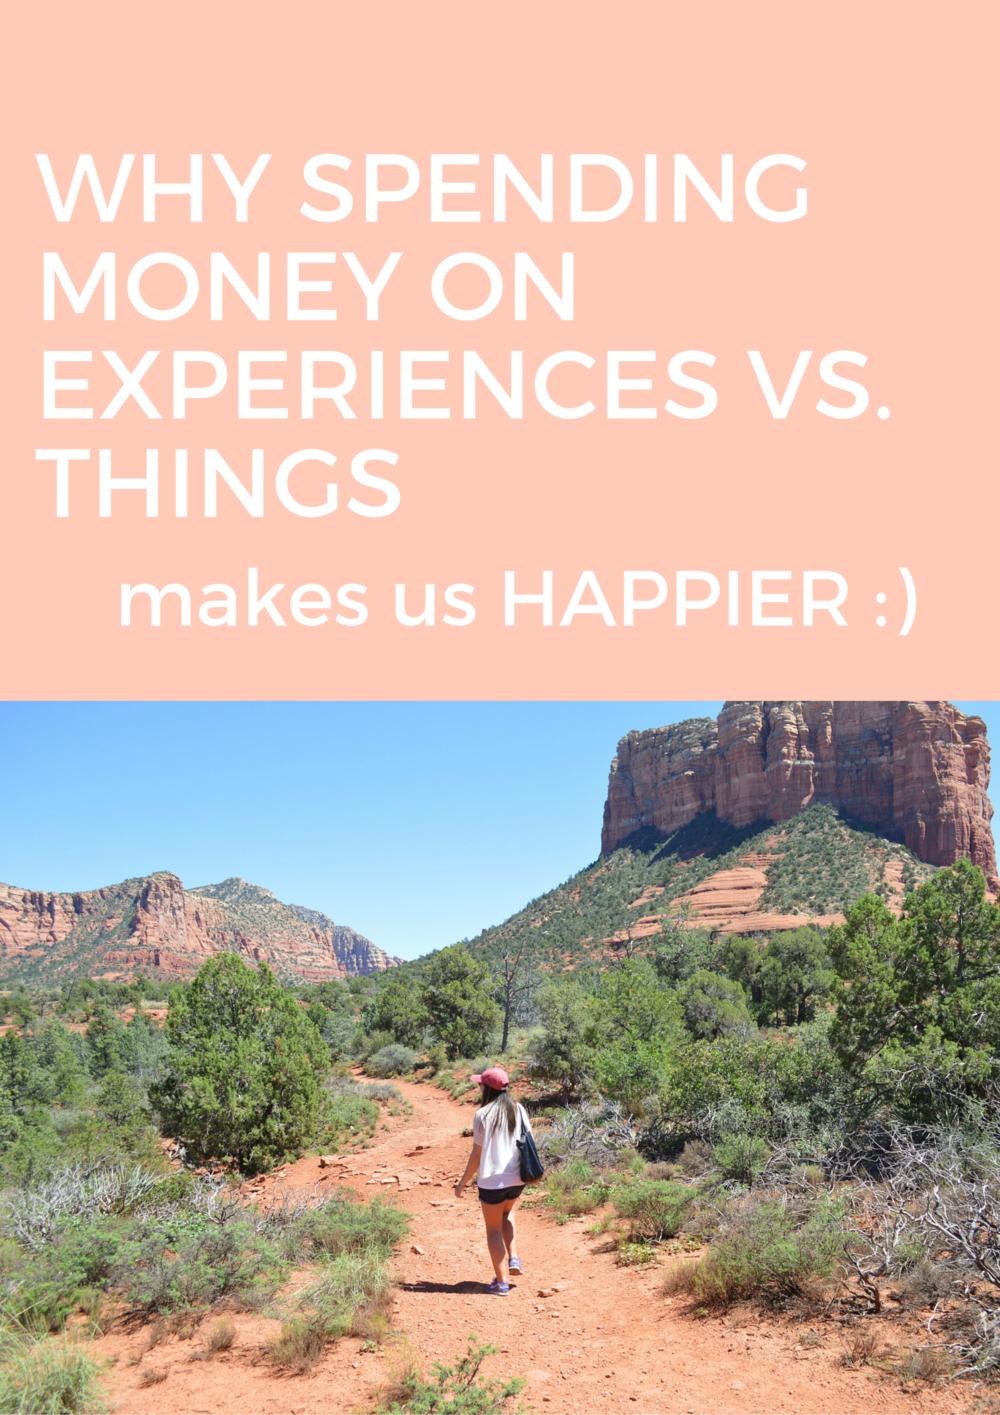 How travel makes us happy and why spending money on experiences vs. things makes us happier in the long run